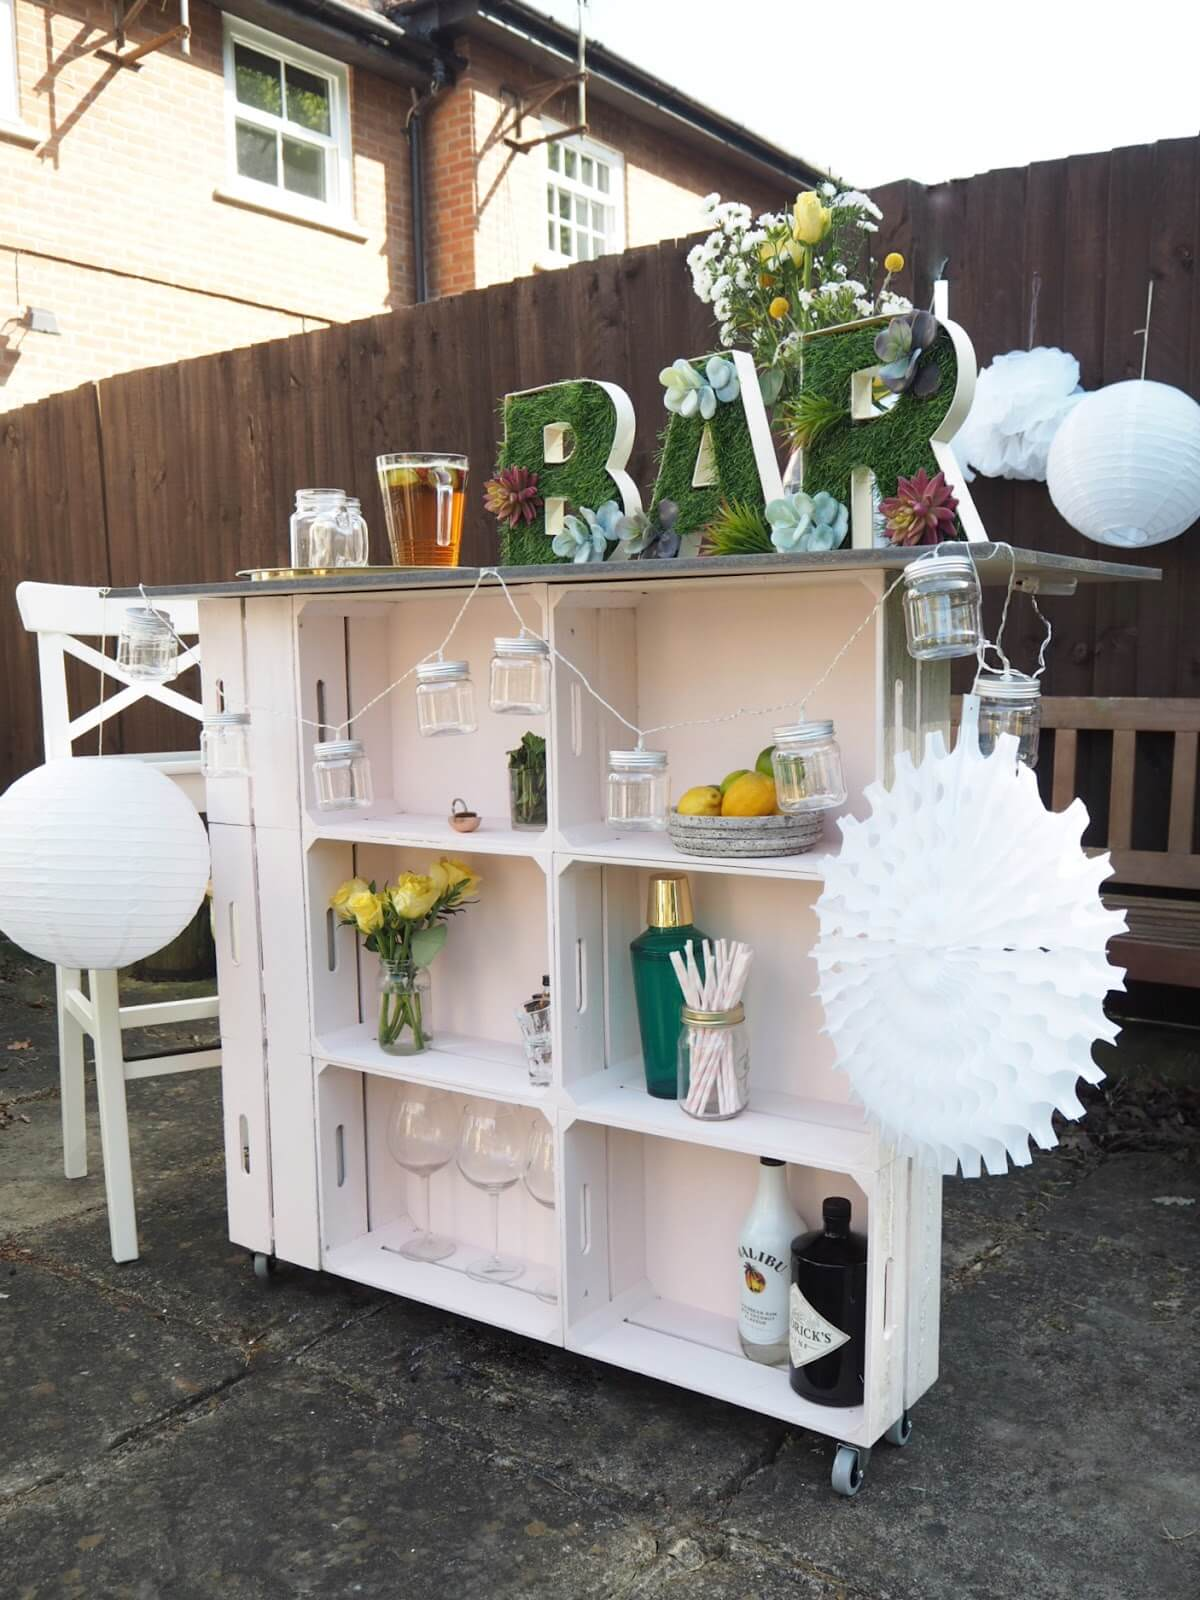 Unique Wooden Crate Bar on Wheels